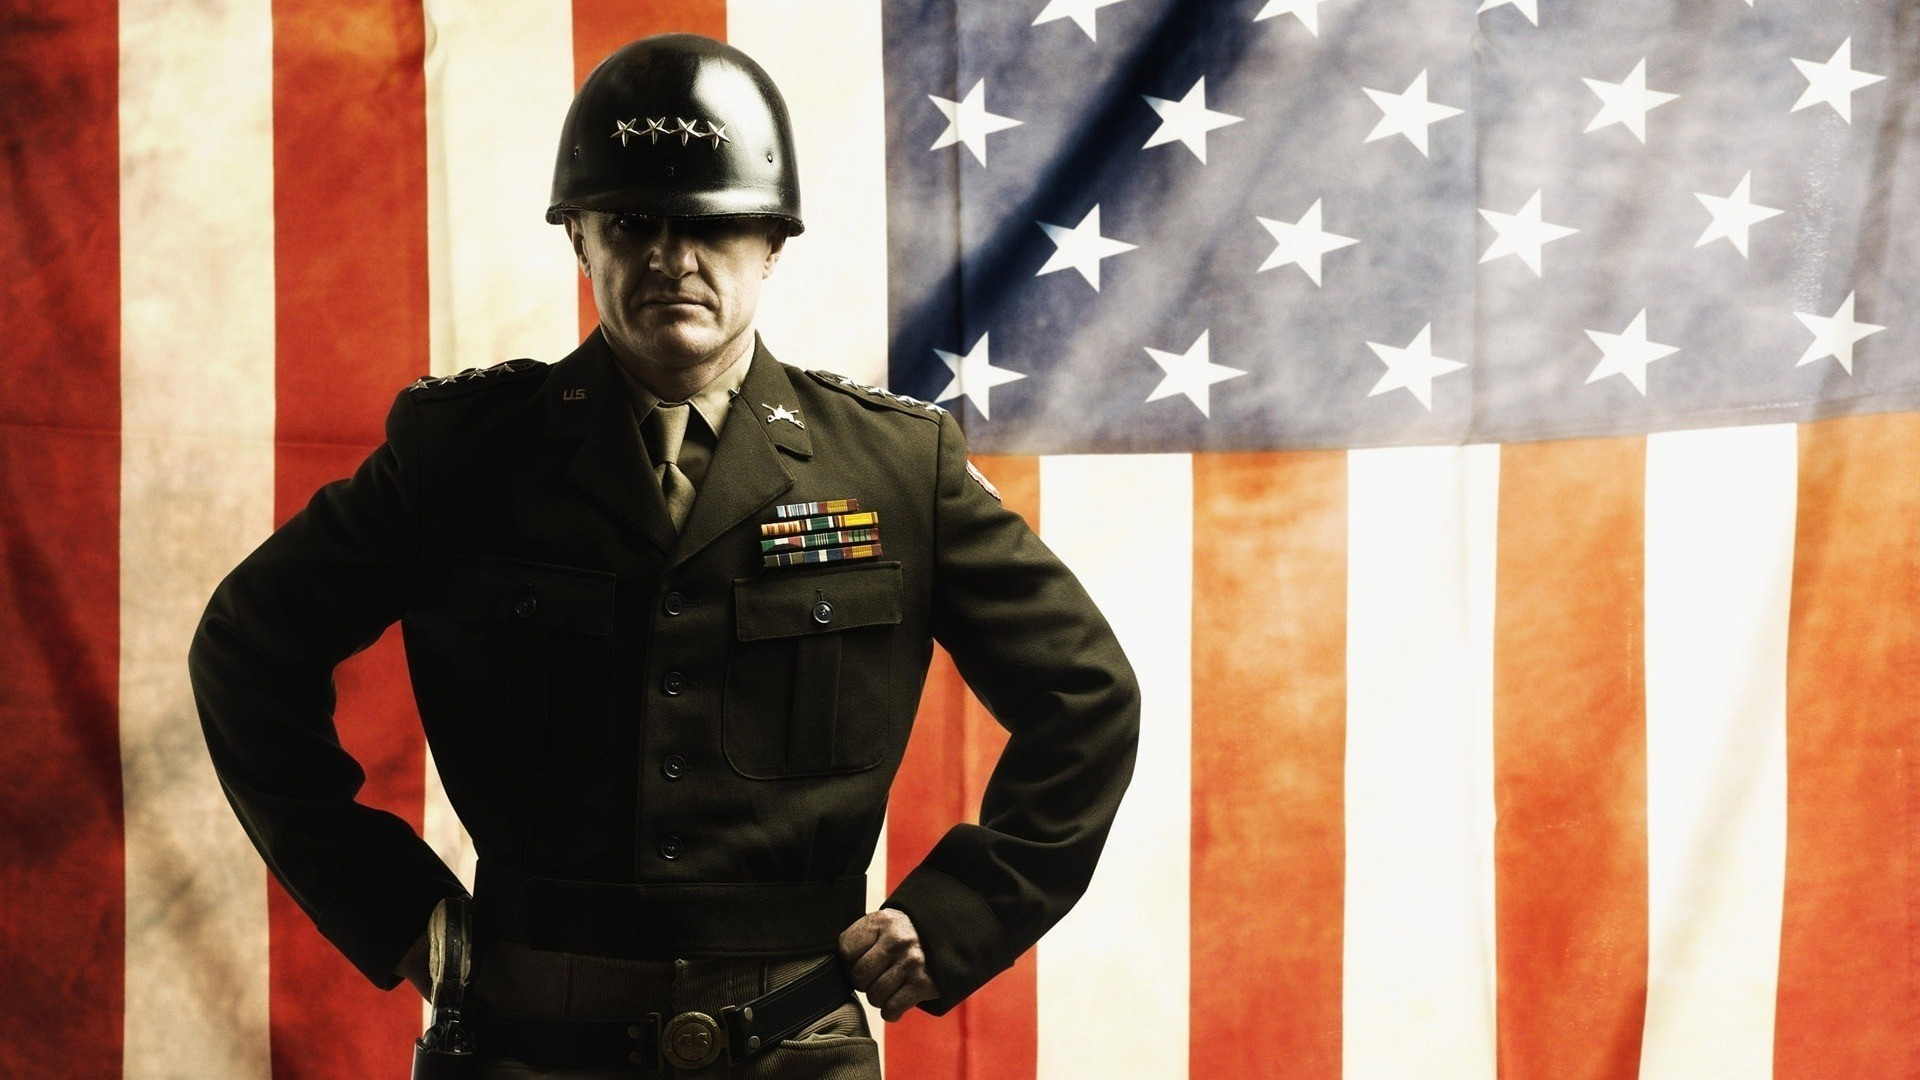 American Soldiers Wallpapers Android Apps on Google Play